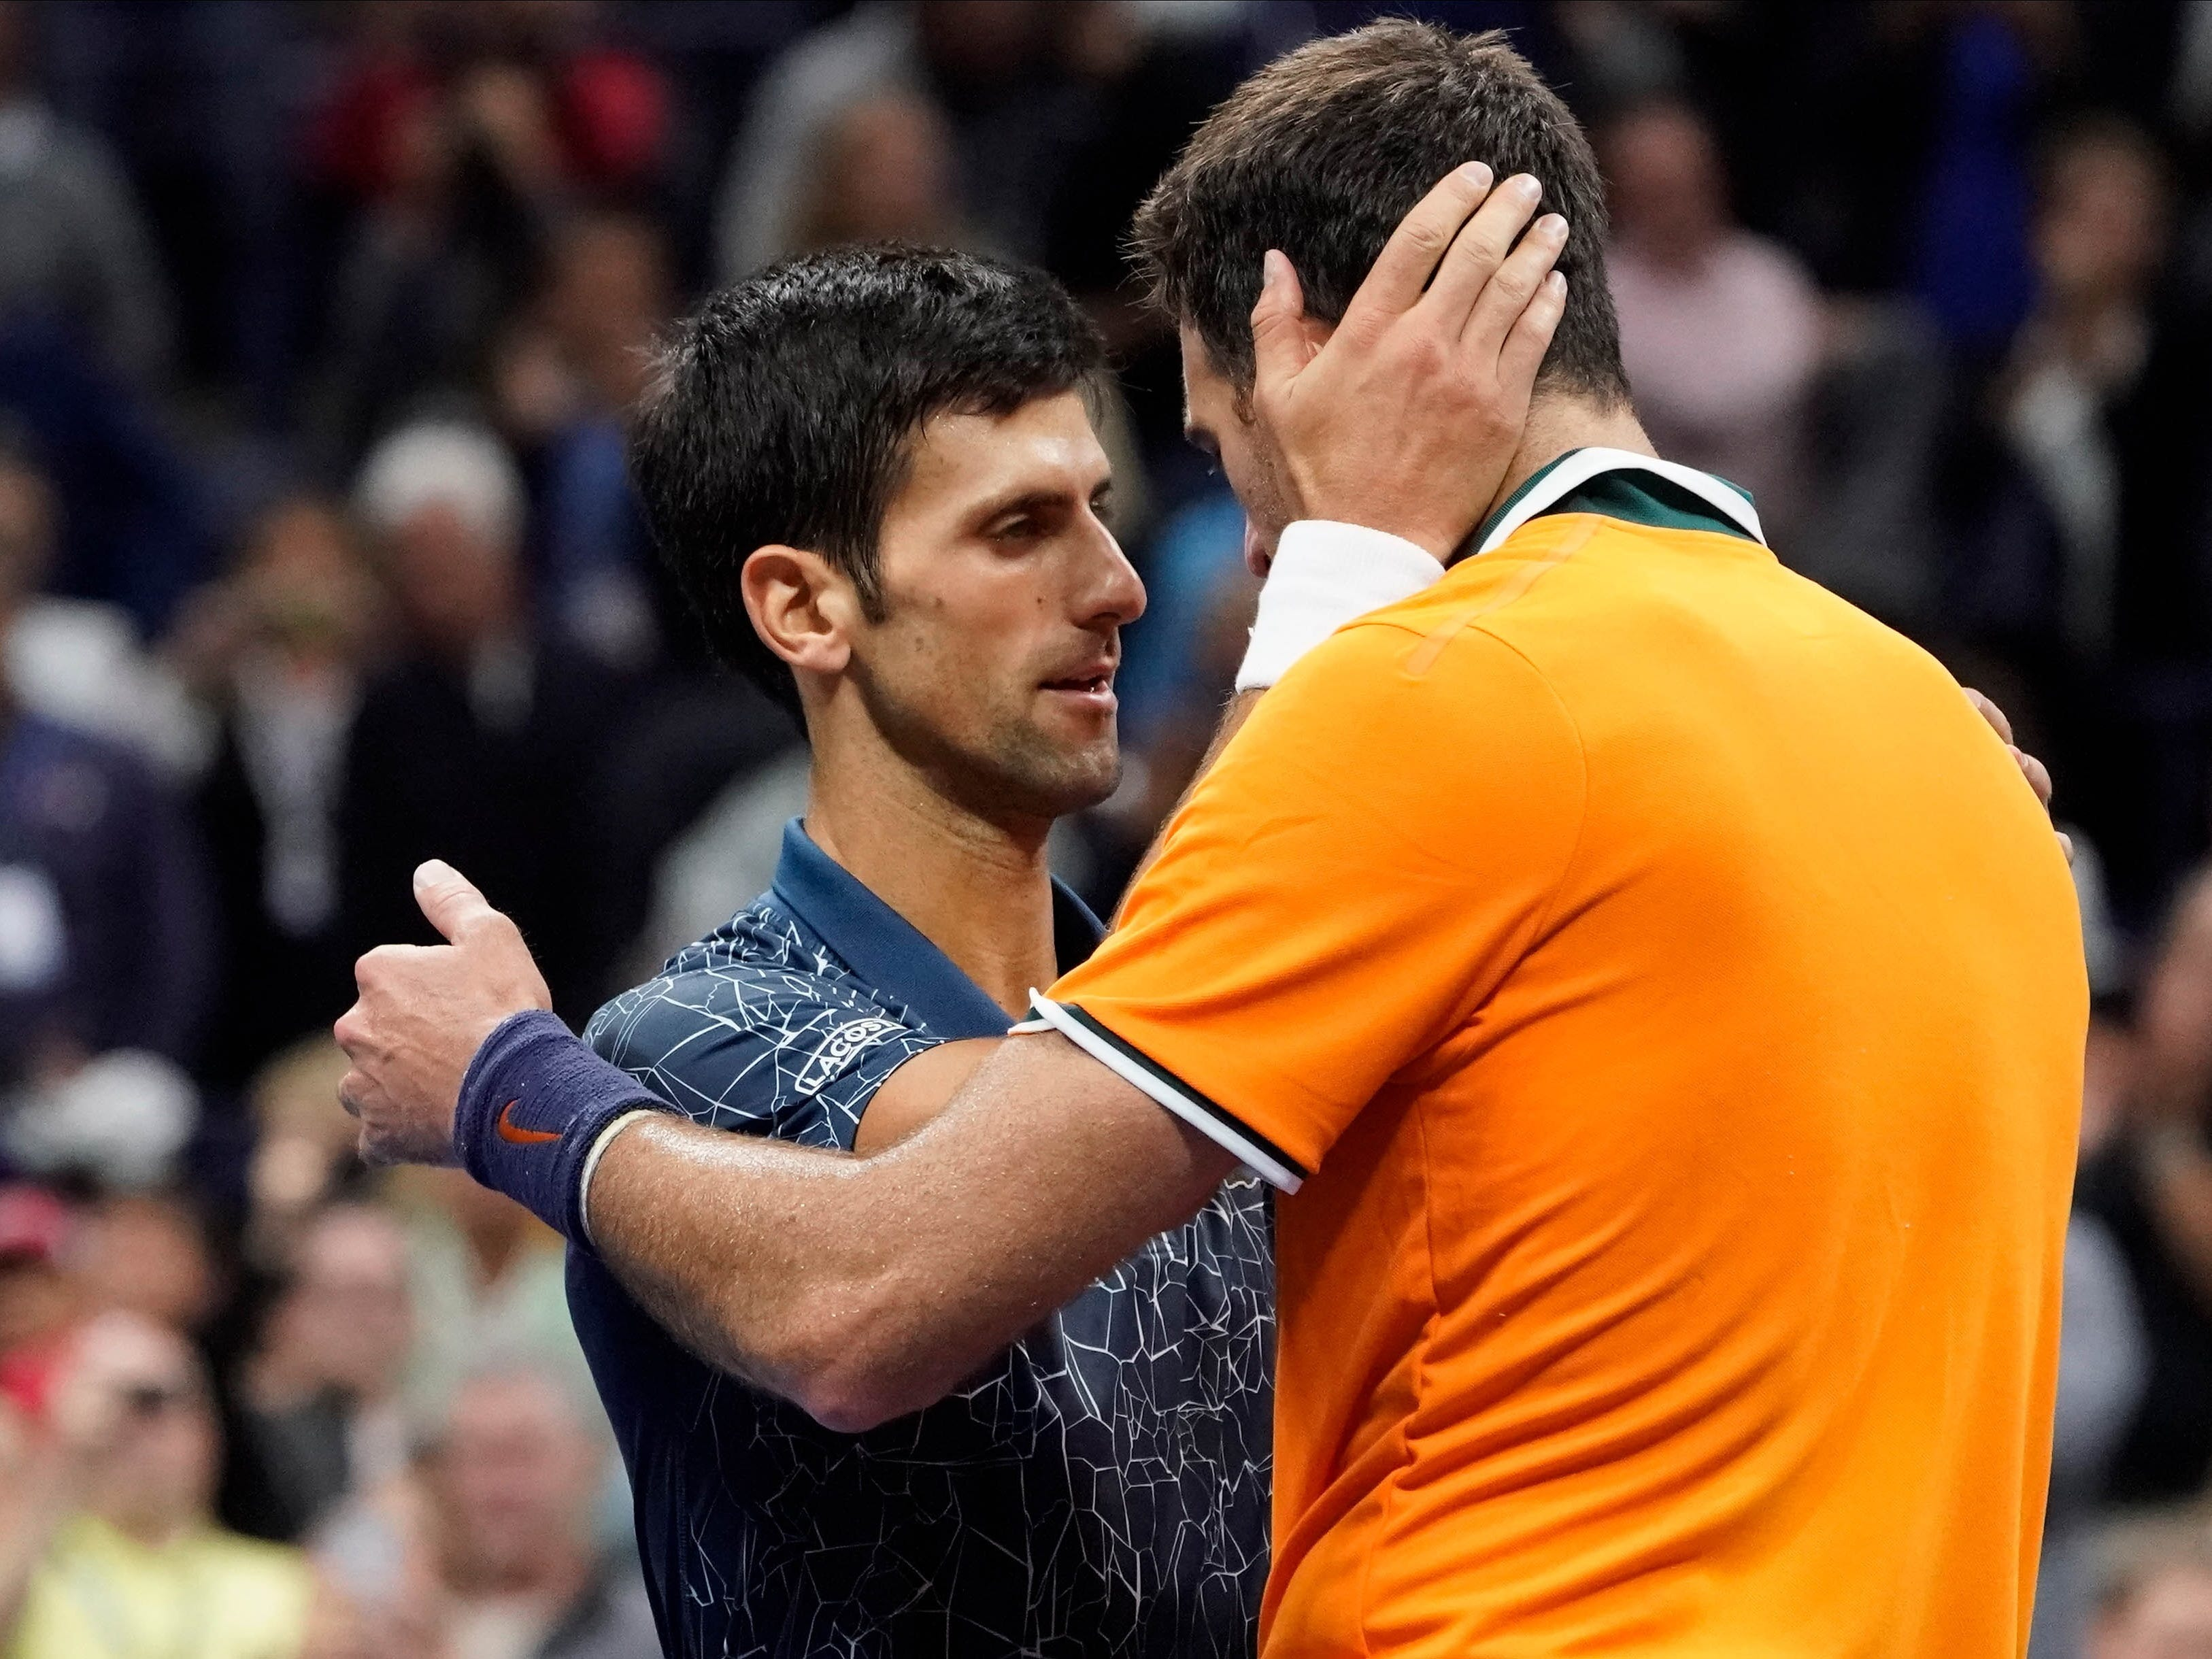 Novak Djokovic gets a hug from Juan Martin del Potro after an exhausting US Open final.